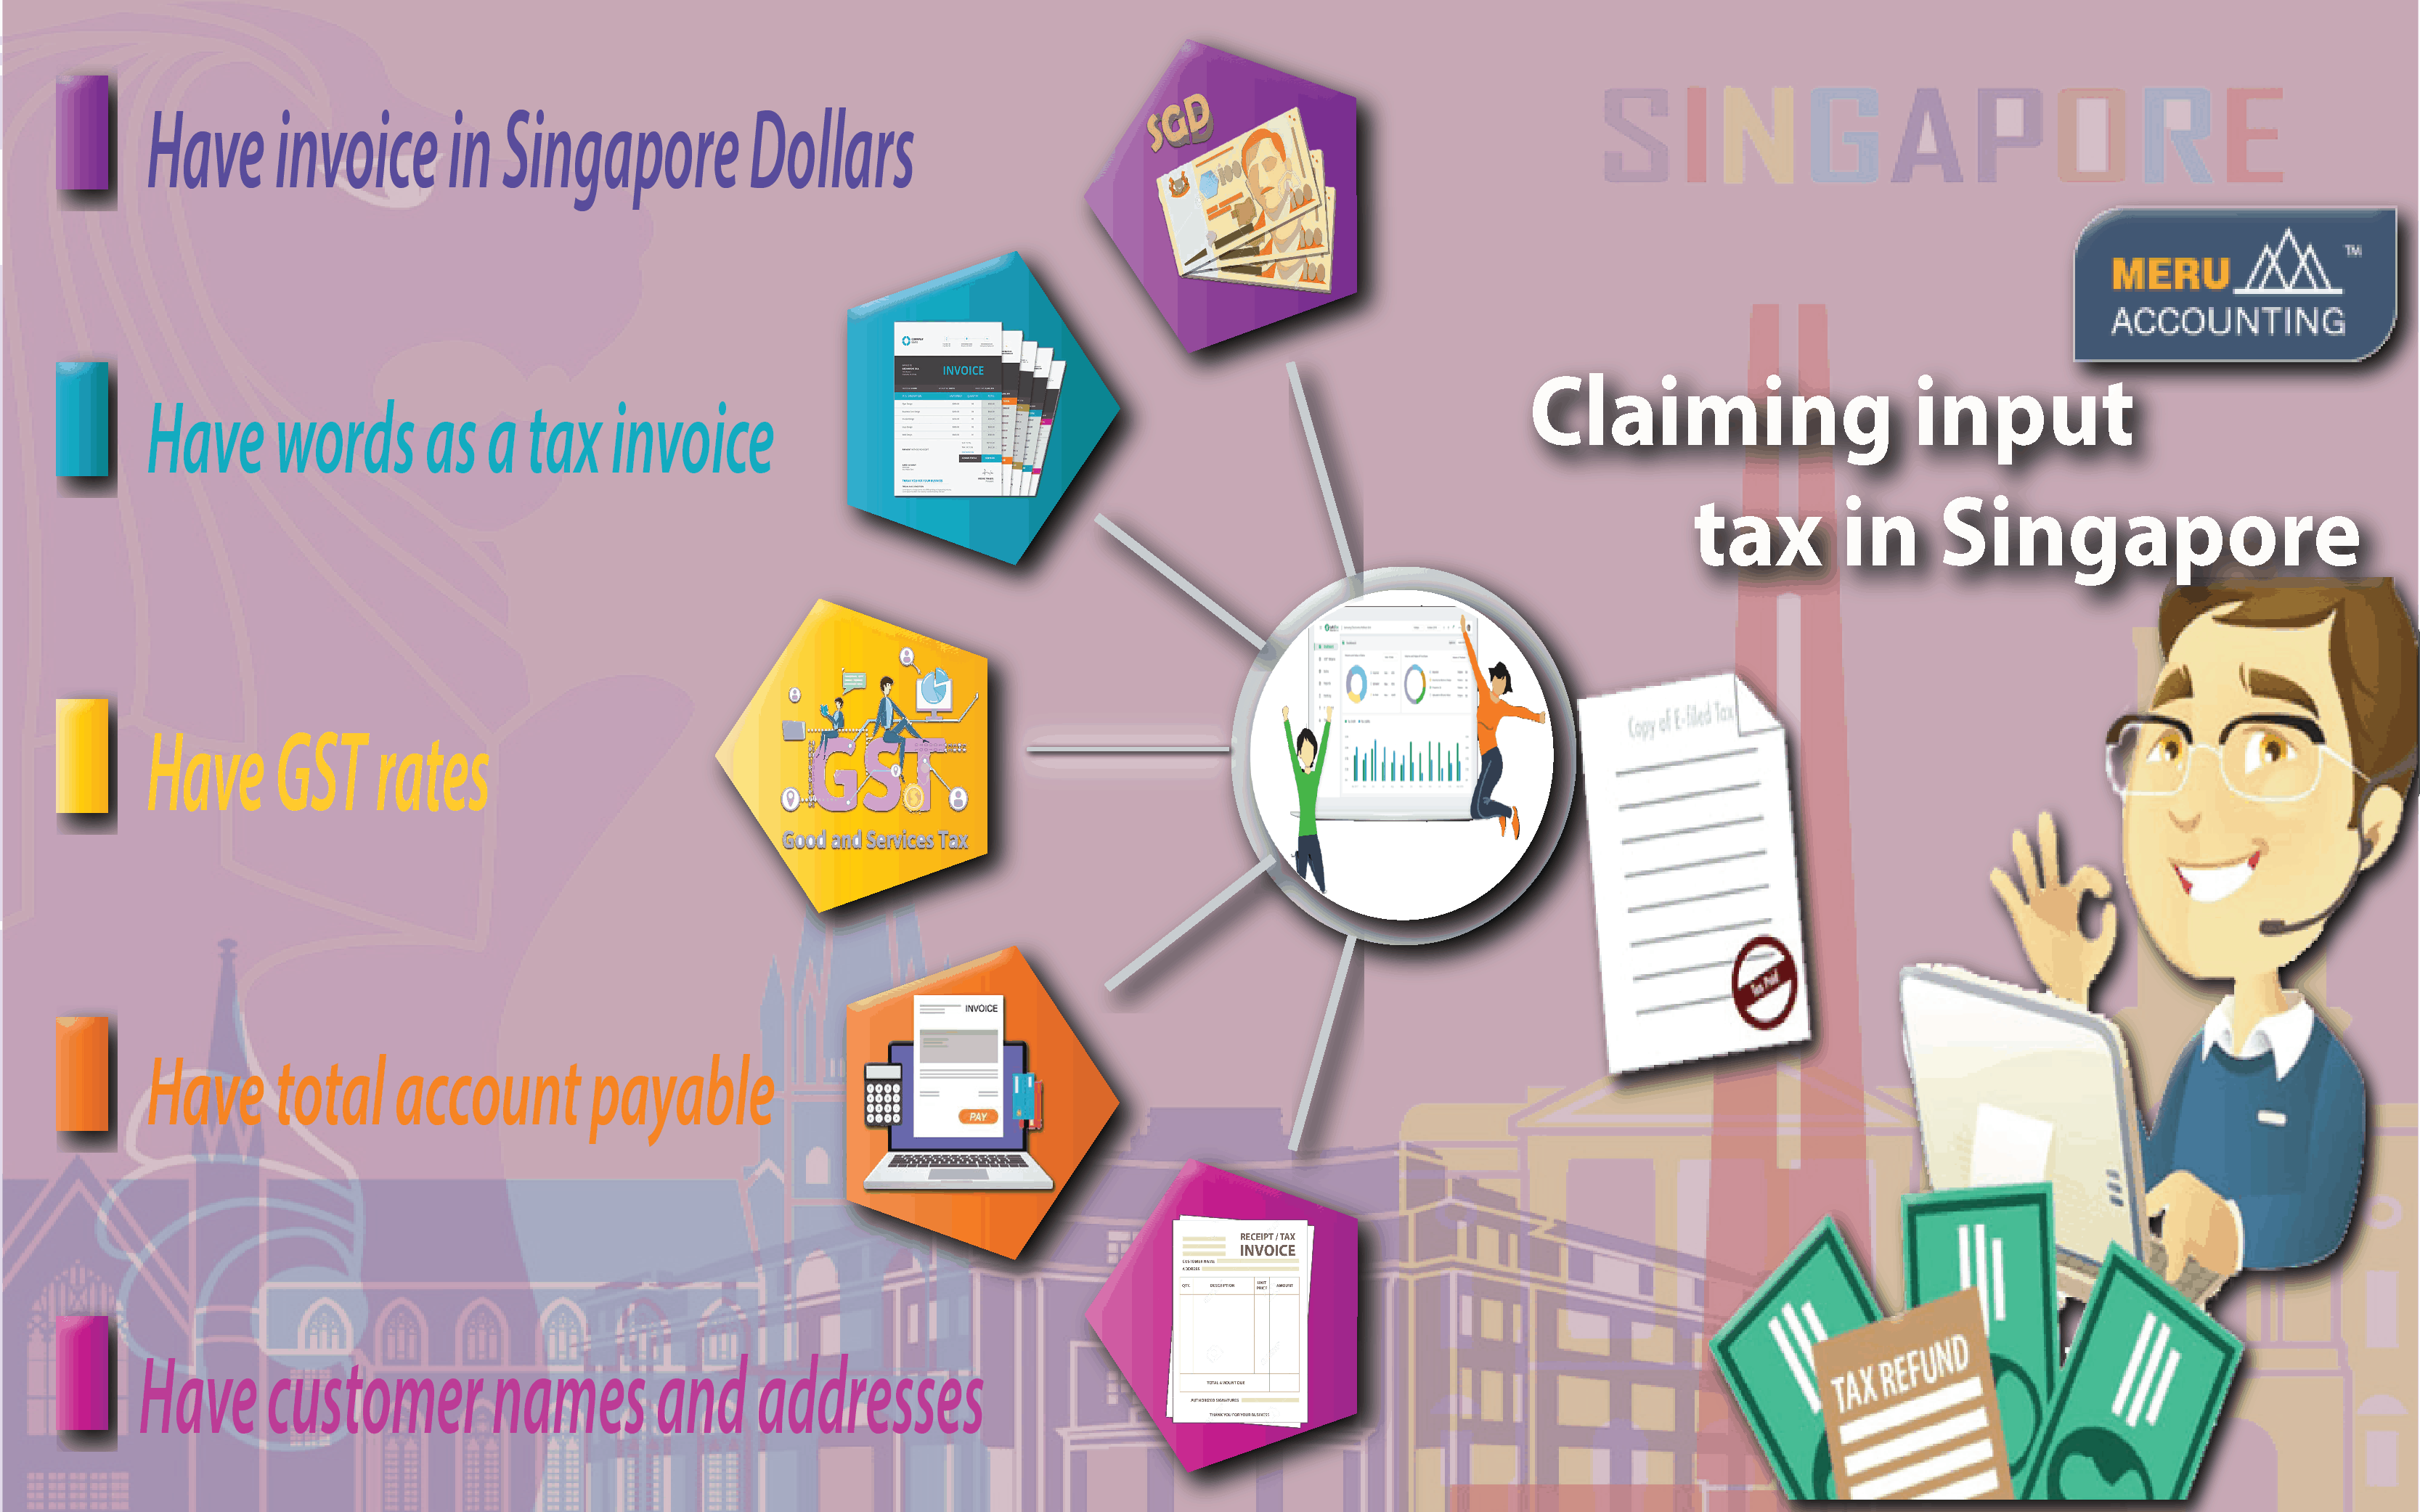 Claiming input tax in Singapore 800x500-01 (1)